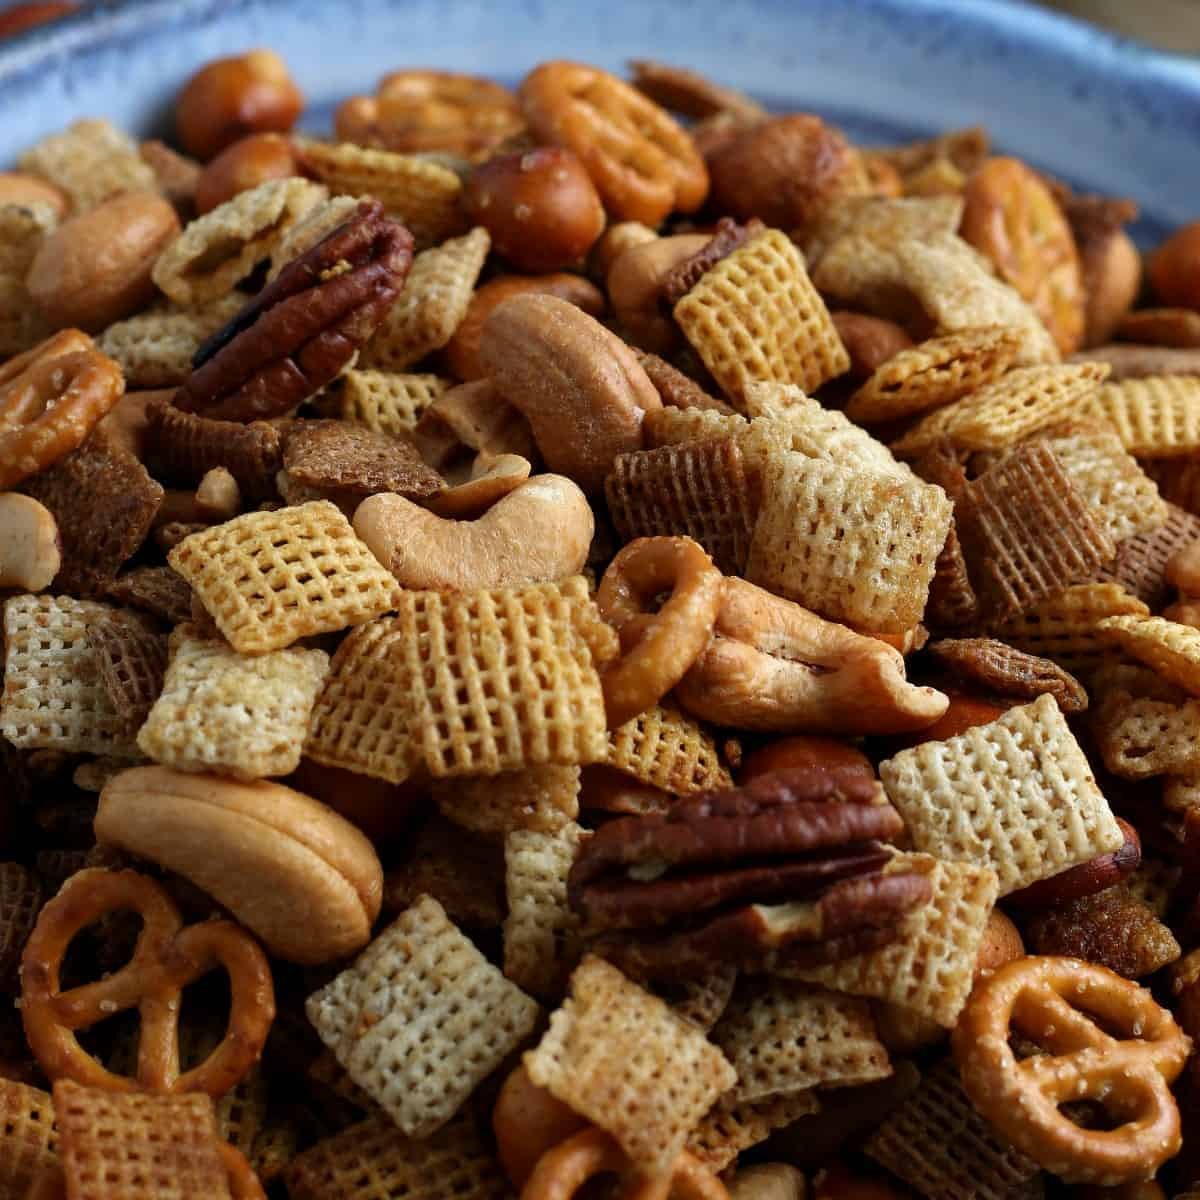 Close up of a snack mix with cereals, pretzels and nuts.